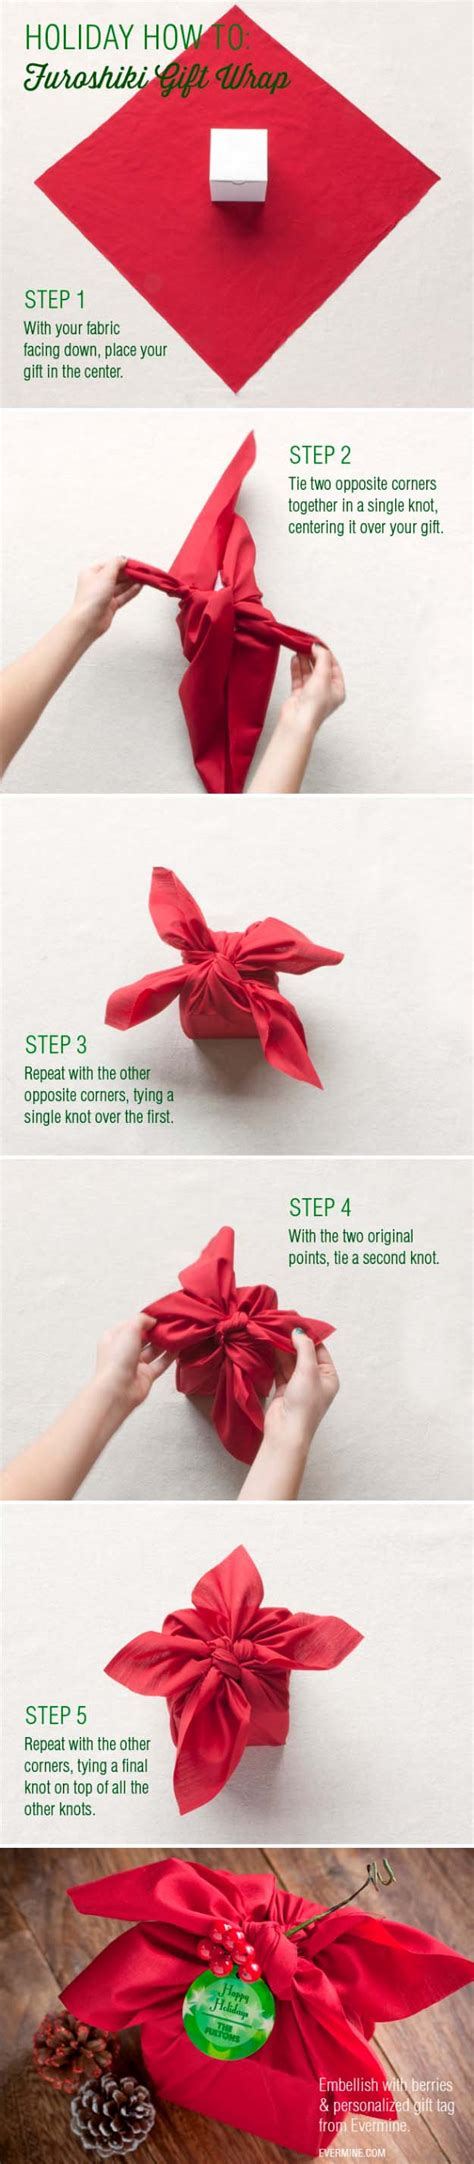 how to wrap a gift 52 insanely clever gift wrapping ideas you ll love